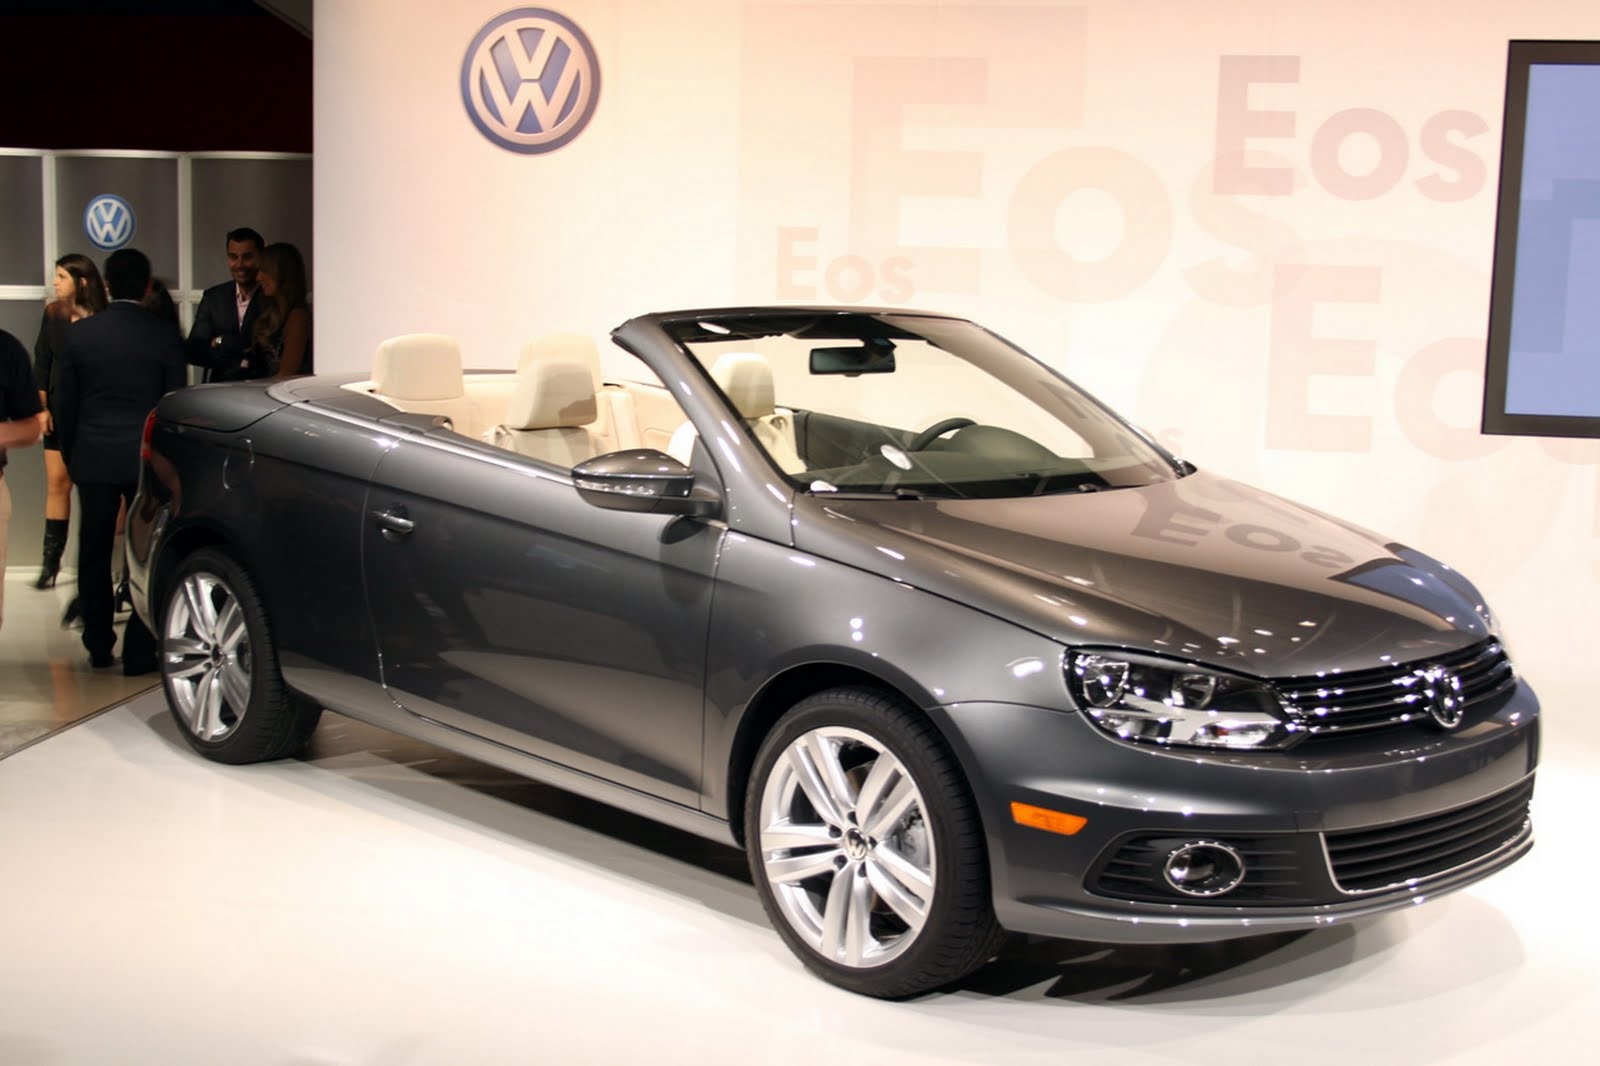 2012 volkswagen eos specifications and features with price details car modification 2011. Black Bedroom Furniture Sets. Home Design Ideas